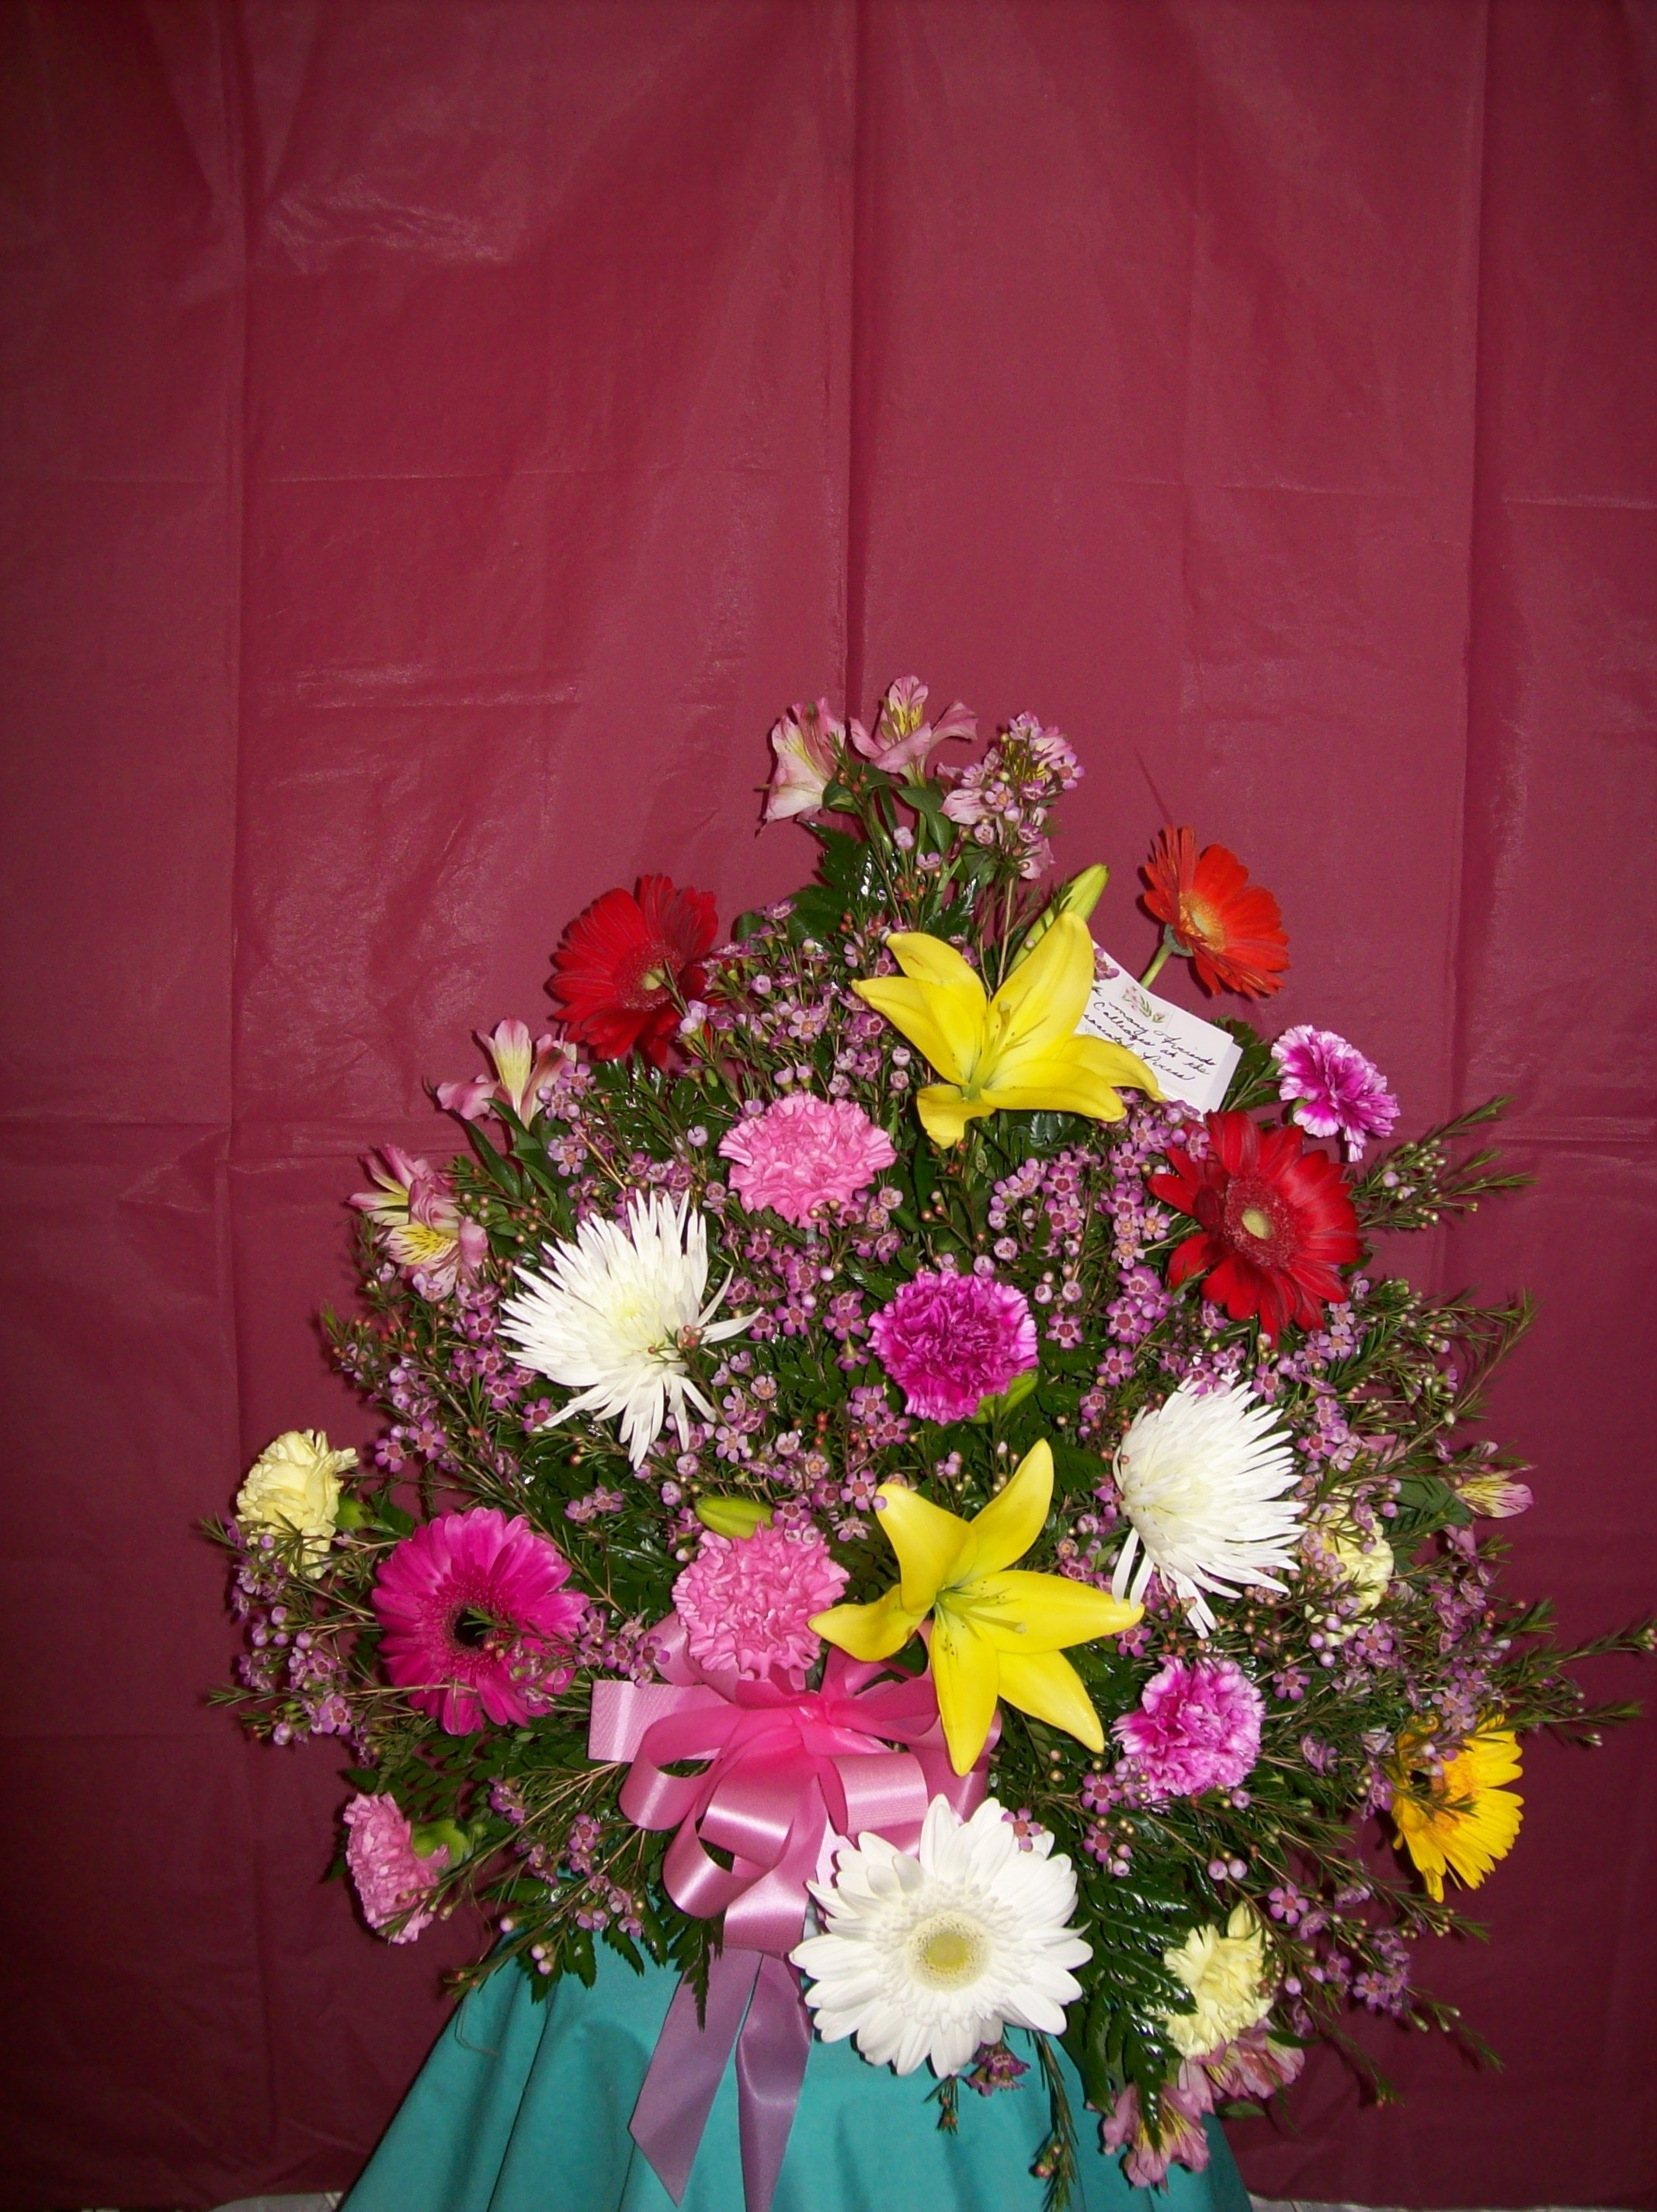 Birthday, Get Well, Anniversary and Any Occasion Flower Arrangements ...